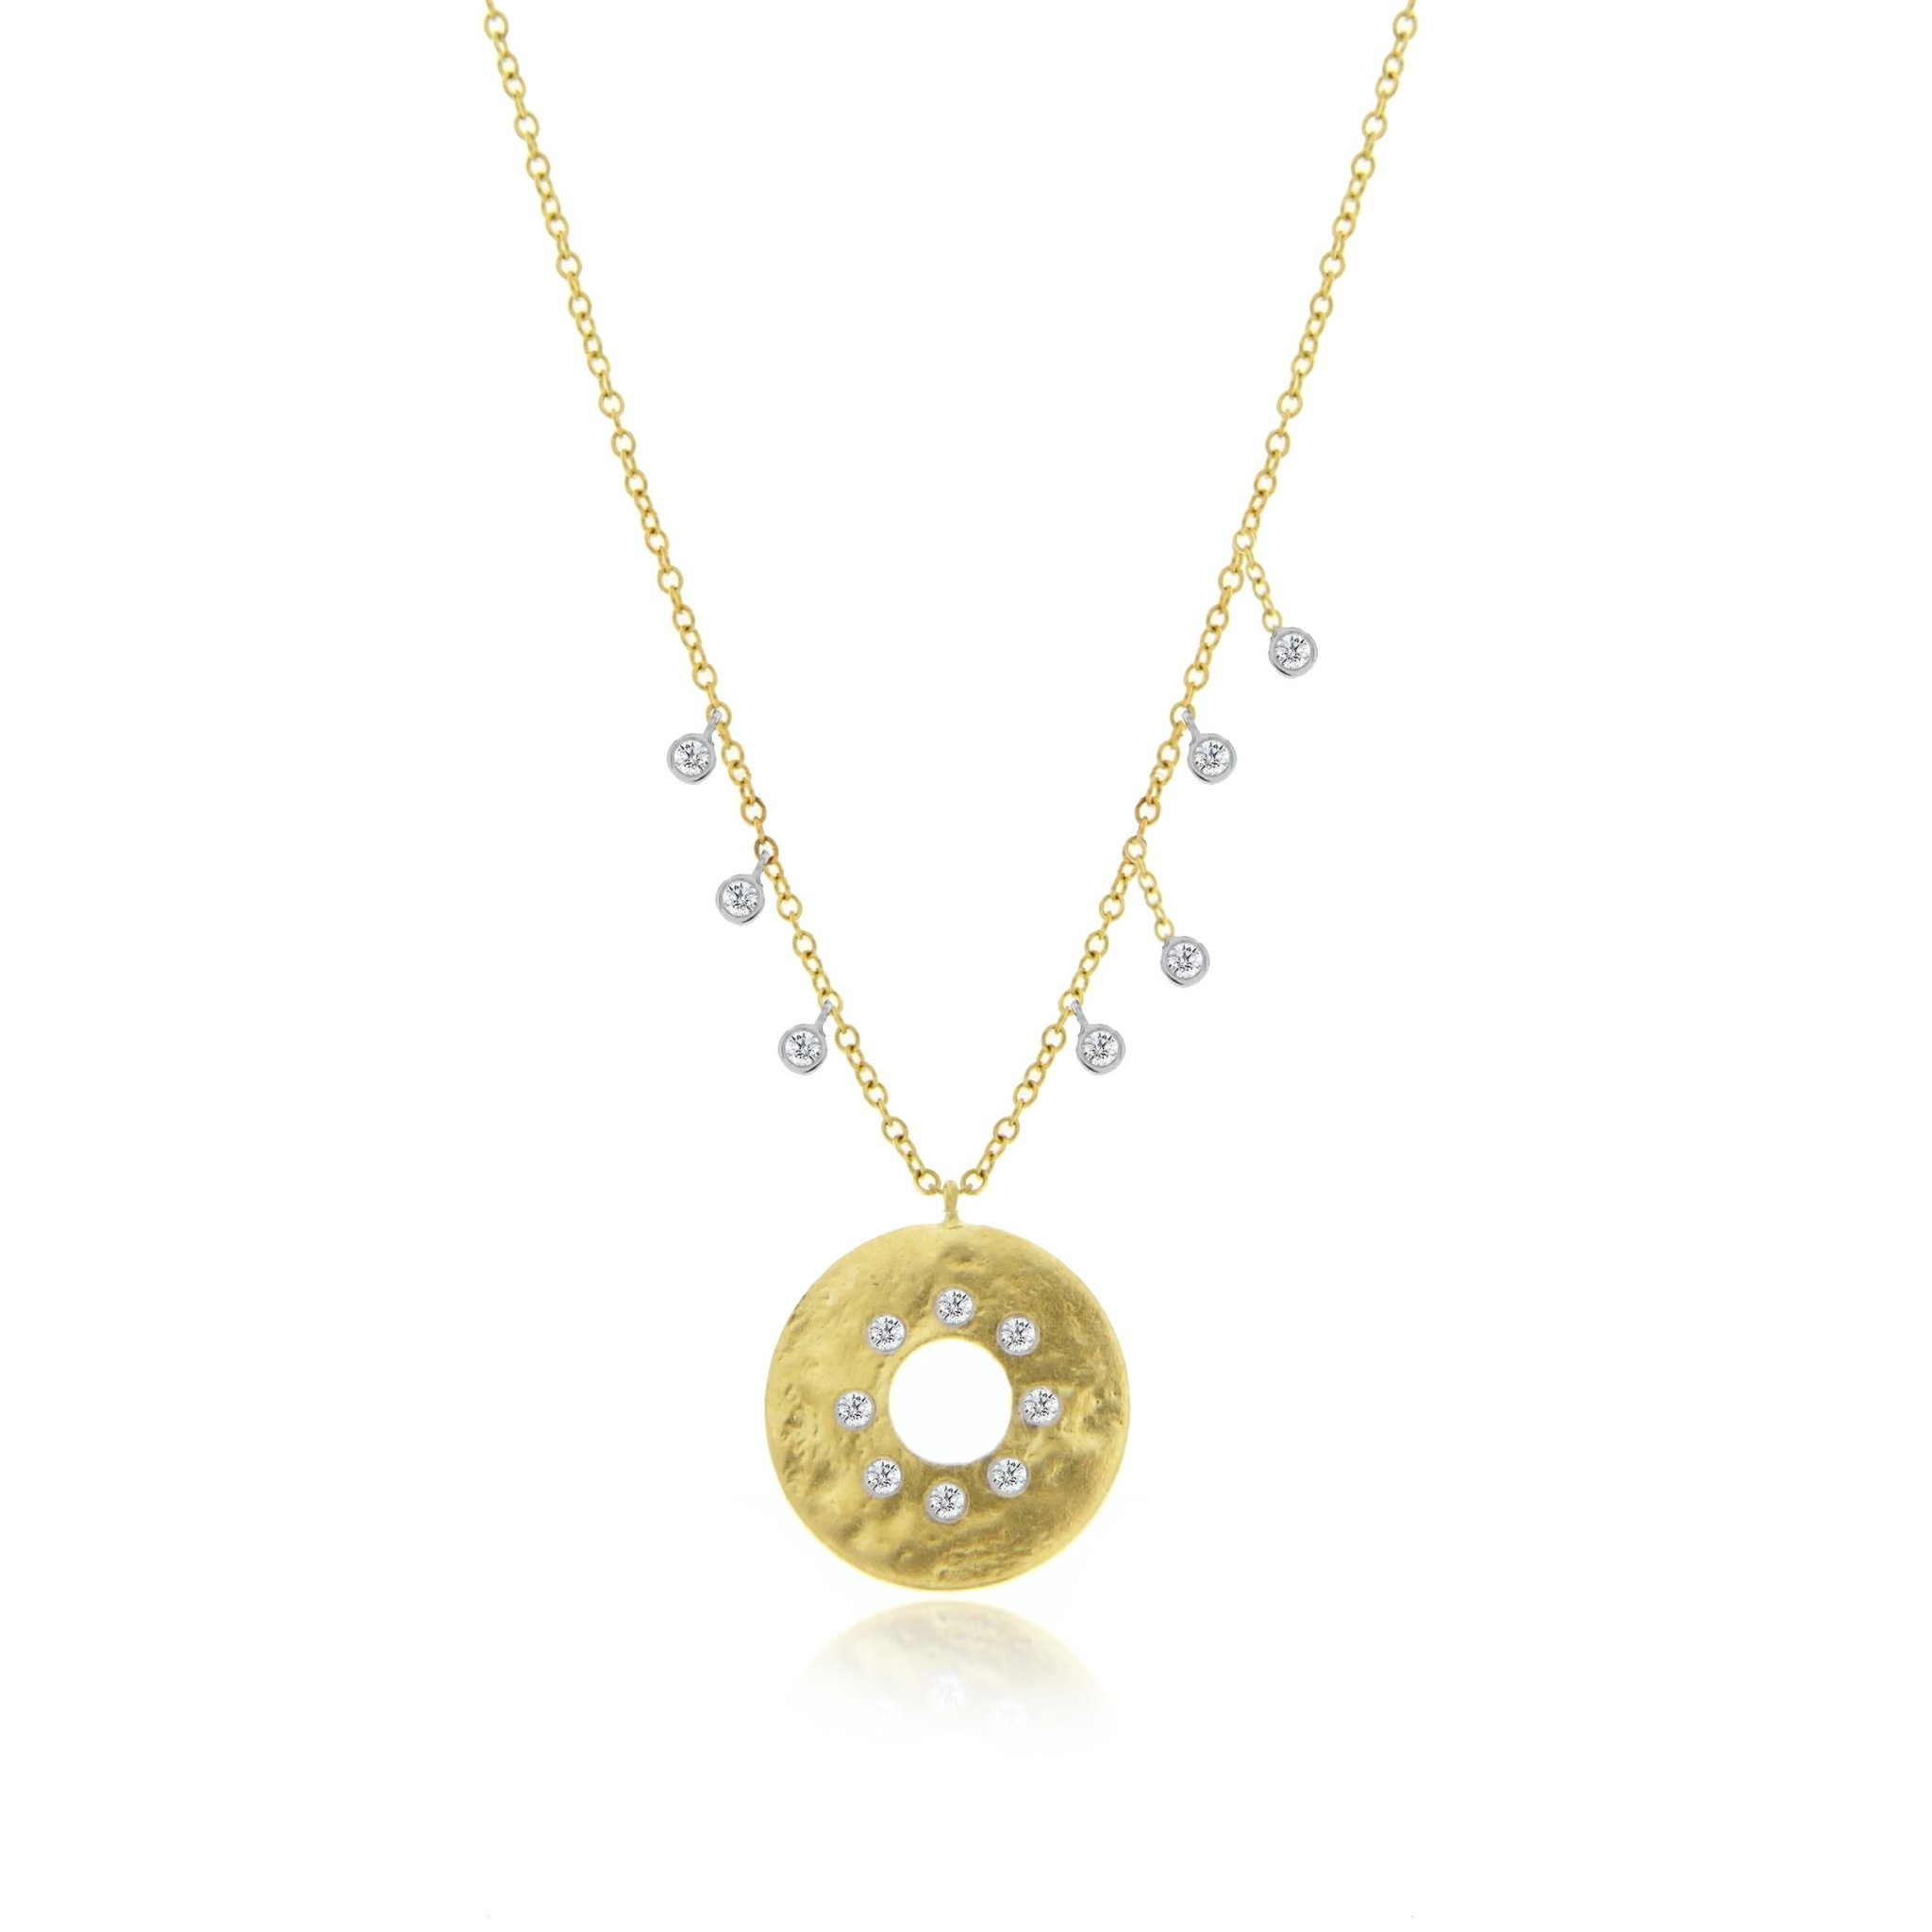 N11695 Gold Disk Diamond Necklace